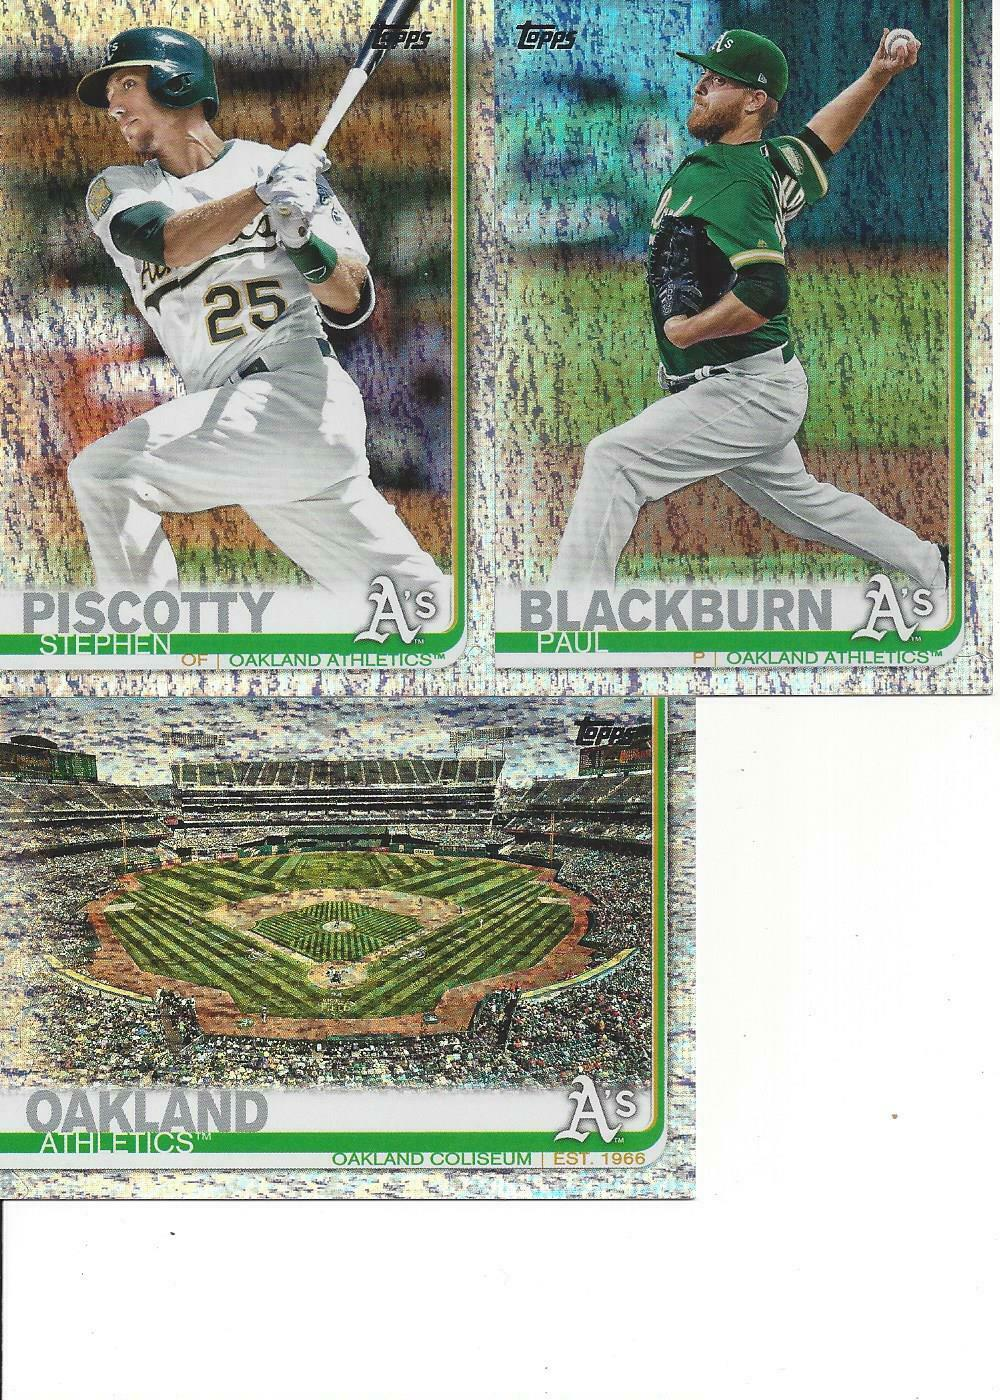 2019 Topps Factory Only Stephen Piscotty 131/162 66 Oakland Athletics - $1.95